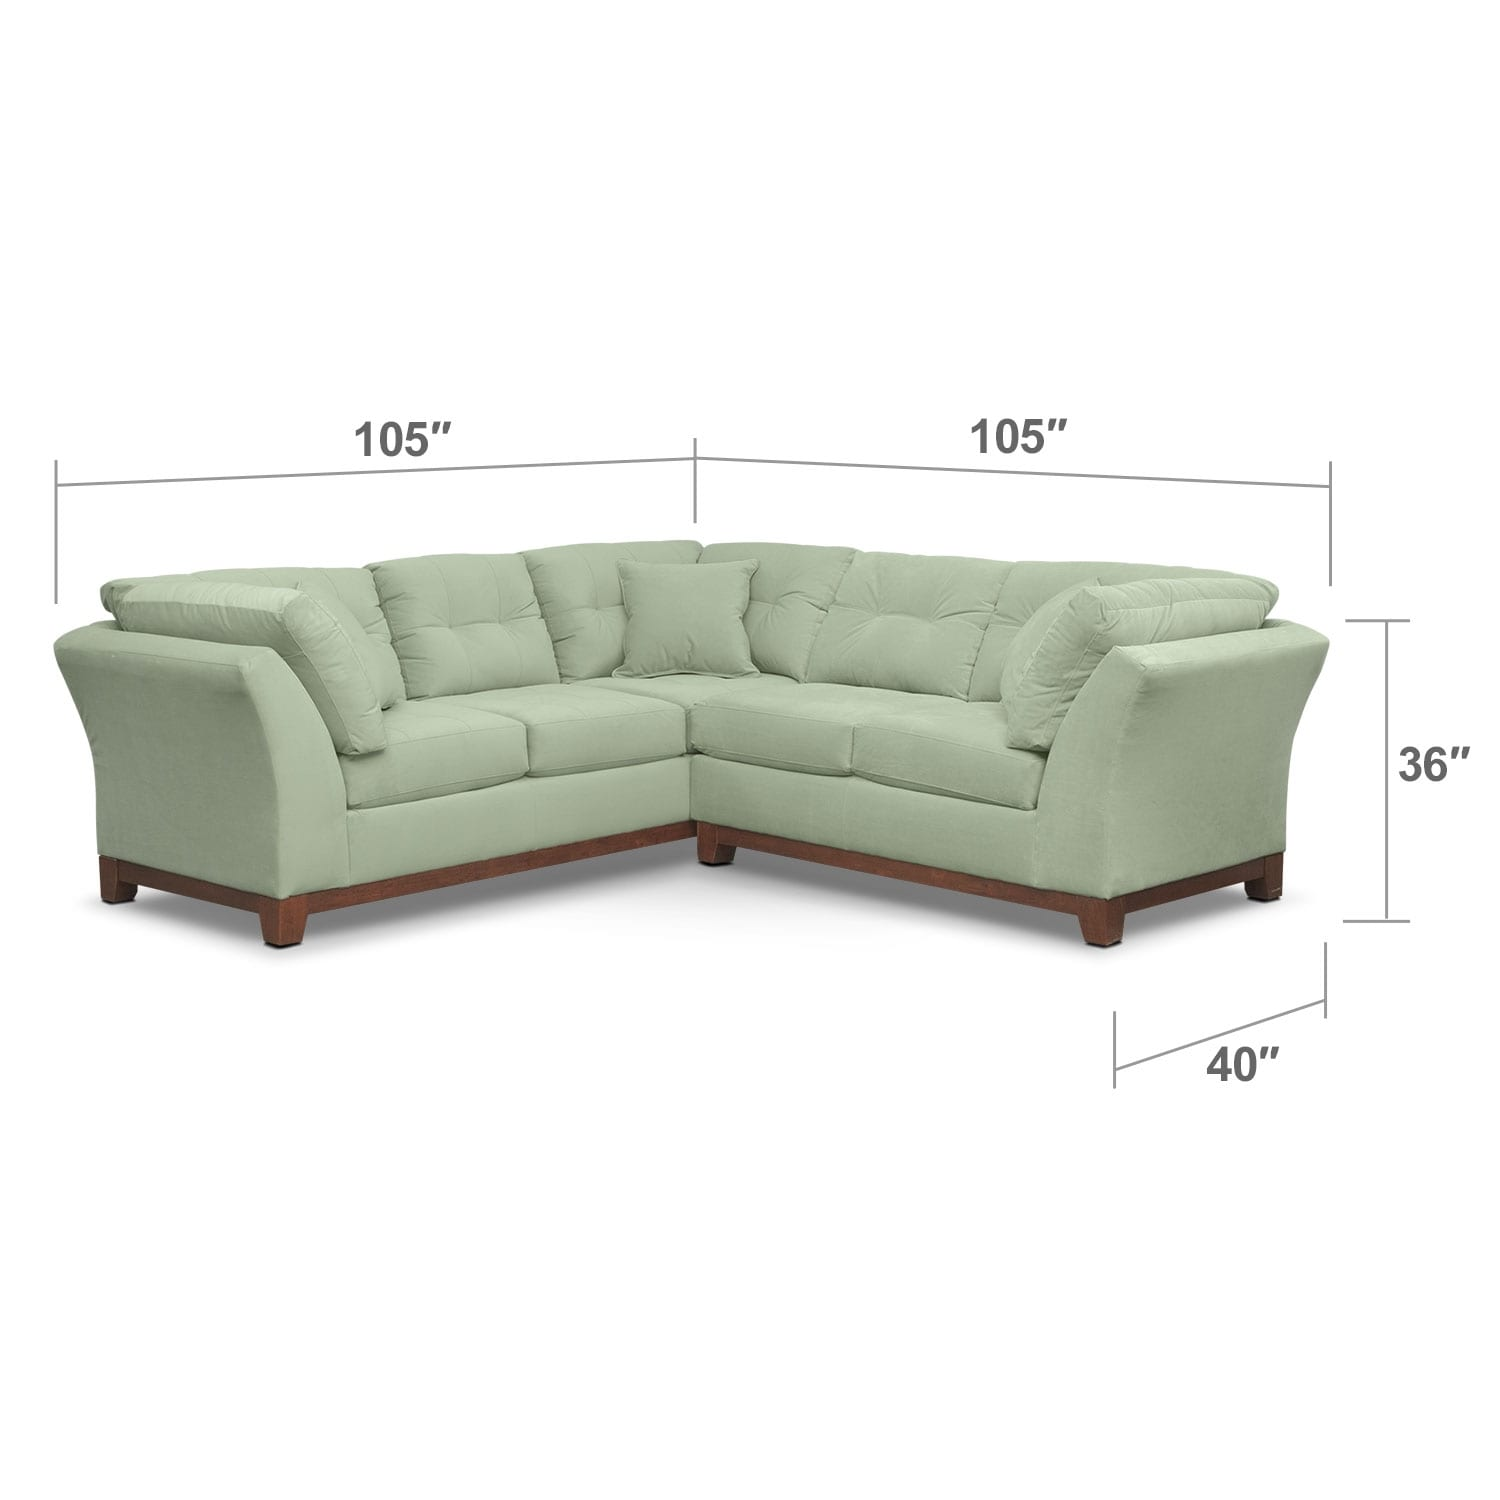 Living Room Furniture - Solace Spa II 2 Pc. Sectional (Alternate II Reverse)